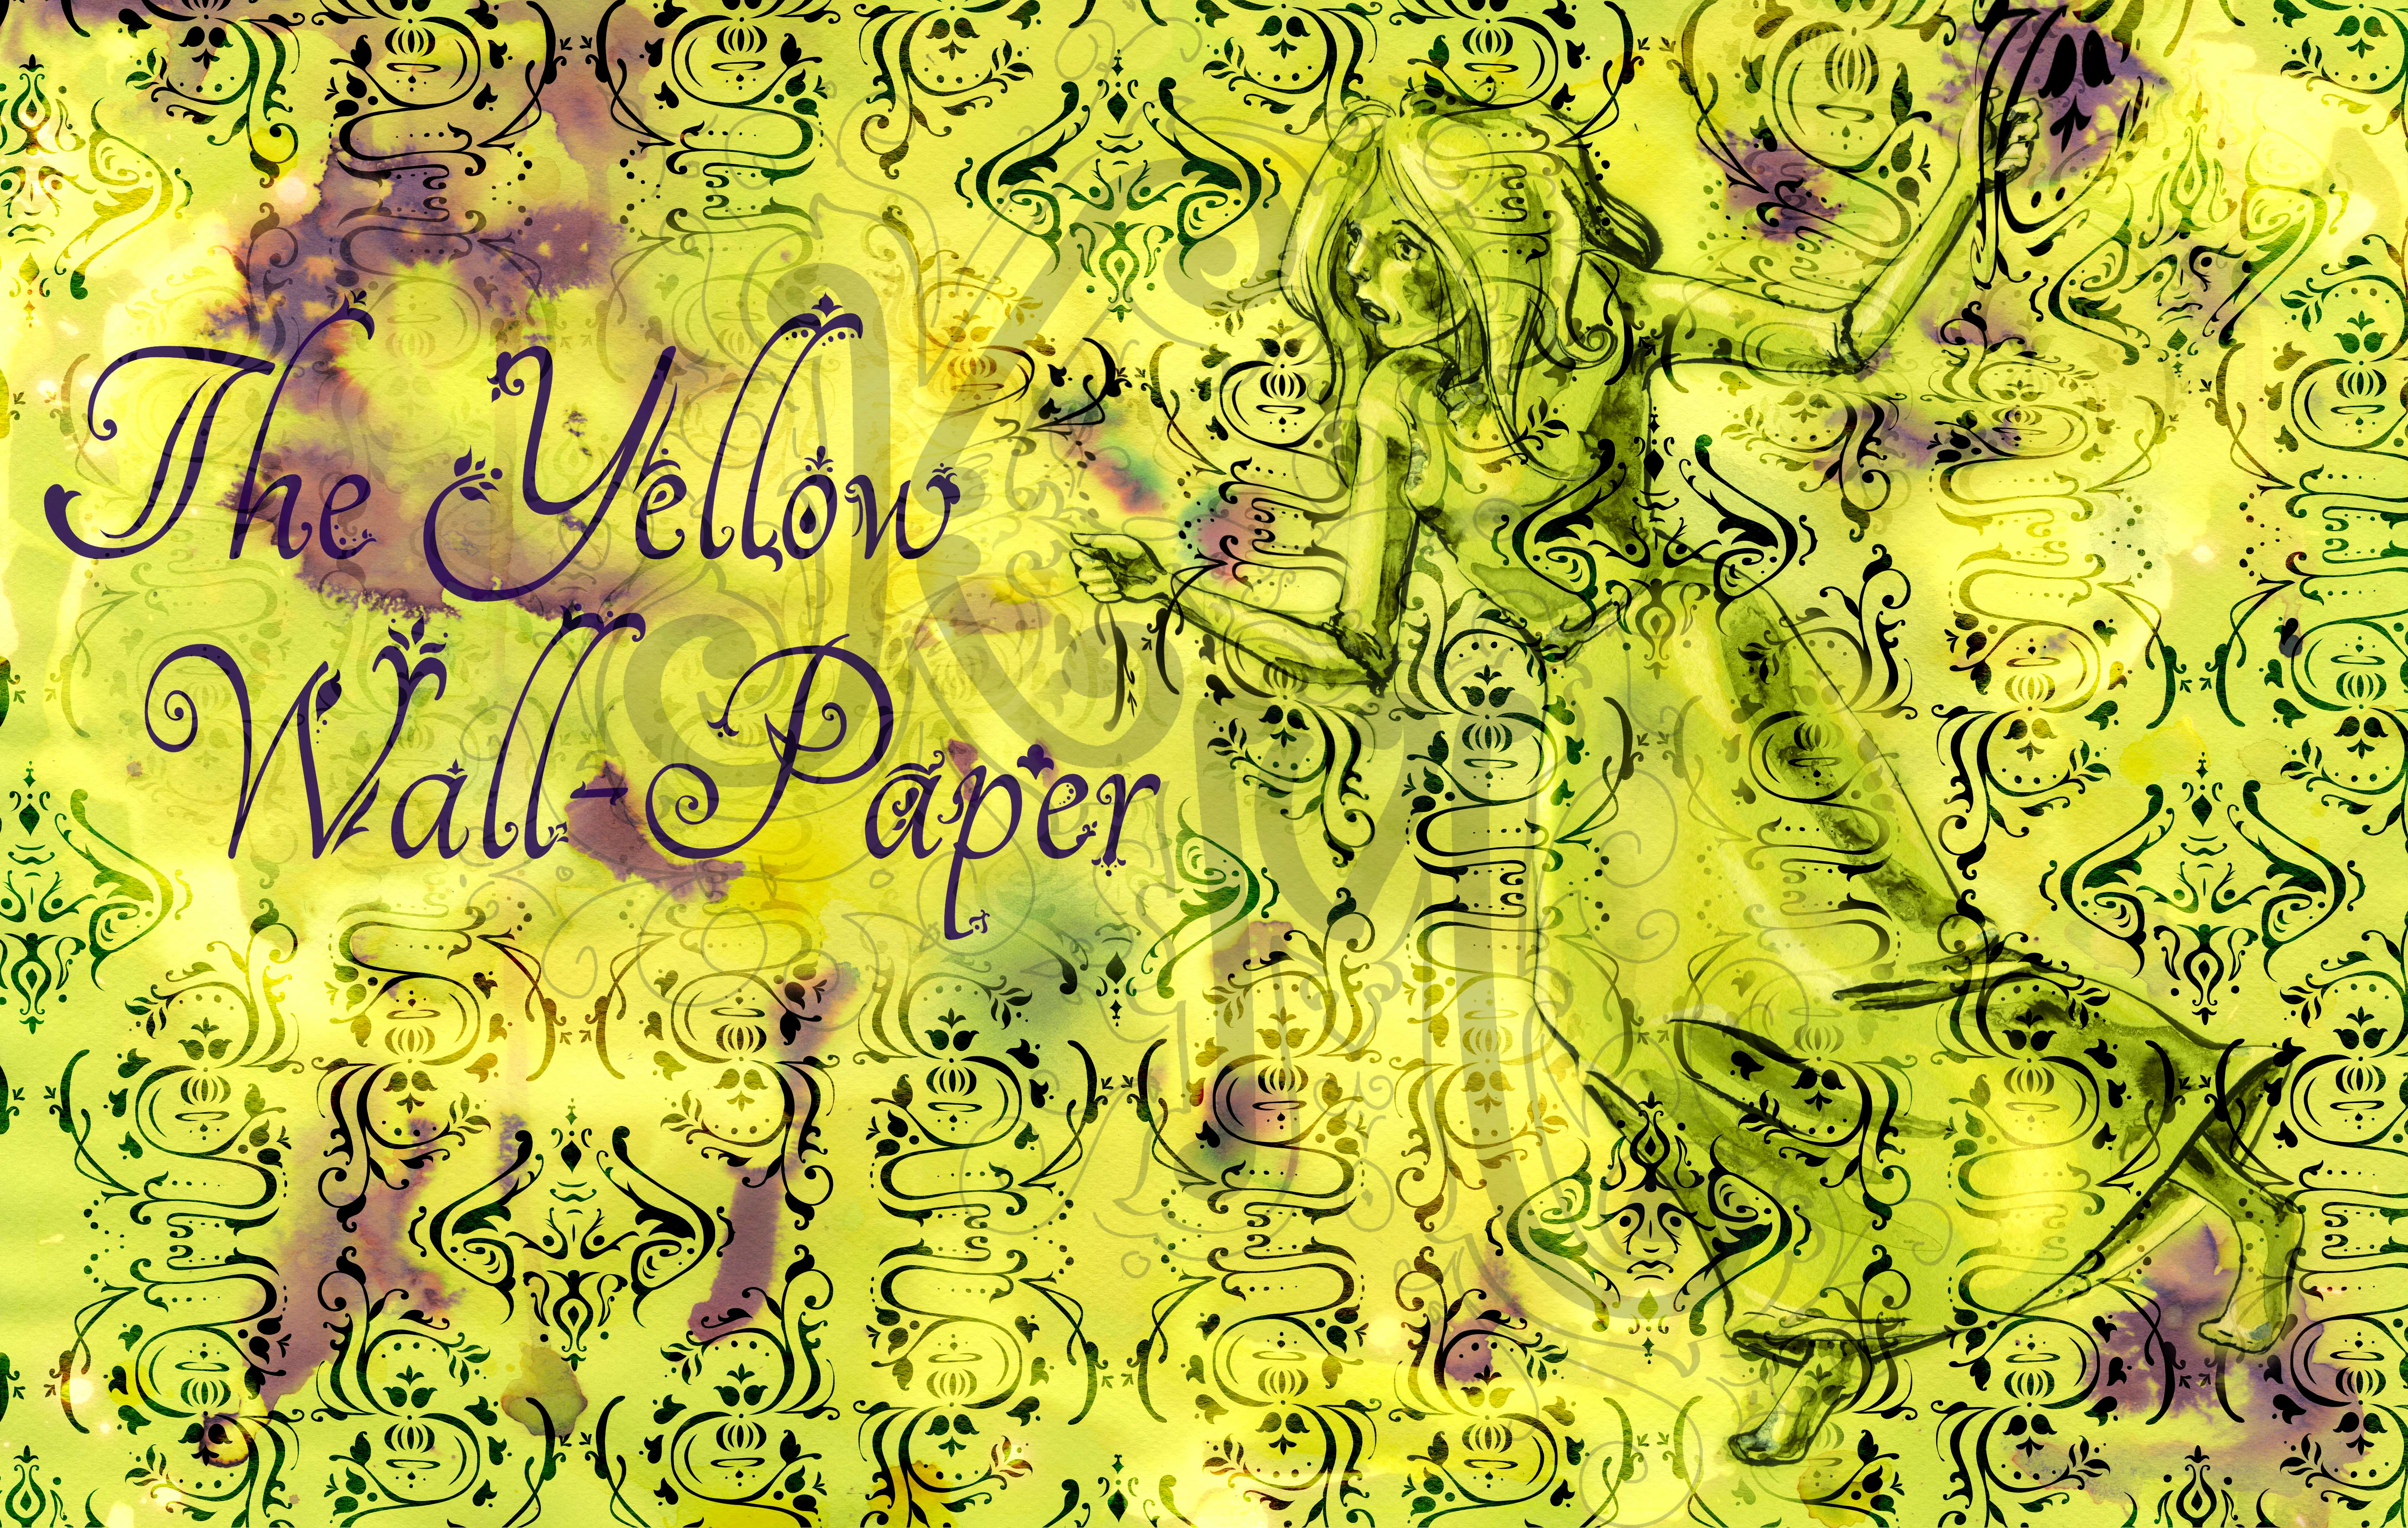 essay the yellow wallpaper by charlotte perkins gilman Read this essay on the yellow paper  by charlotte perkins gilman lack of creativity and isolation in the yellow wallpaper in the yellow wallpaper, charlotte perkins gilman presents an unnamed woman who gradually spirals into a state of mental psychosis.